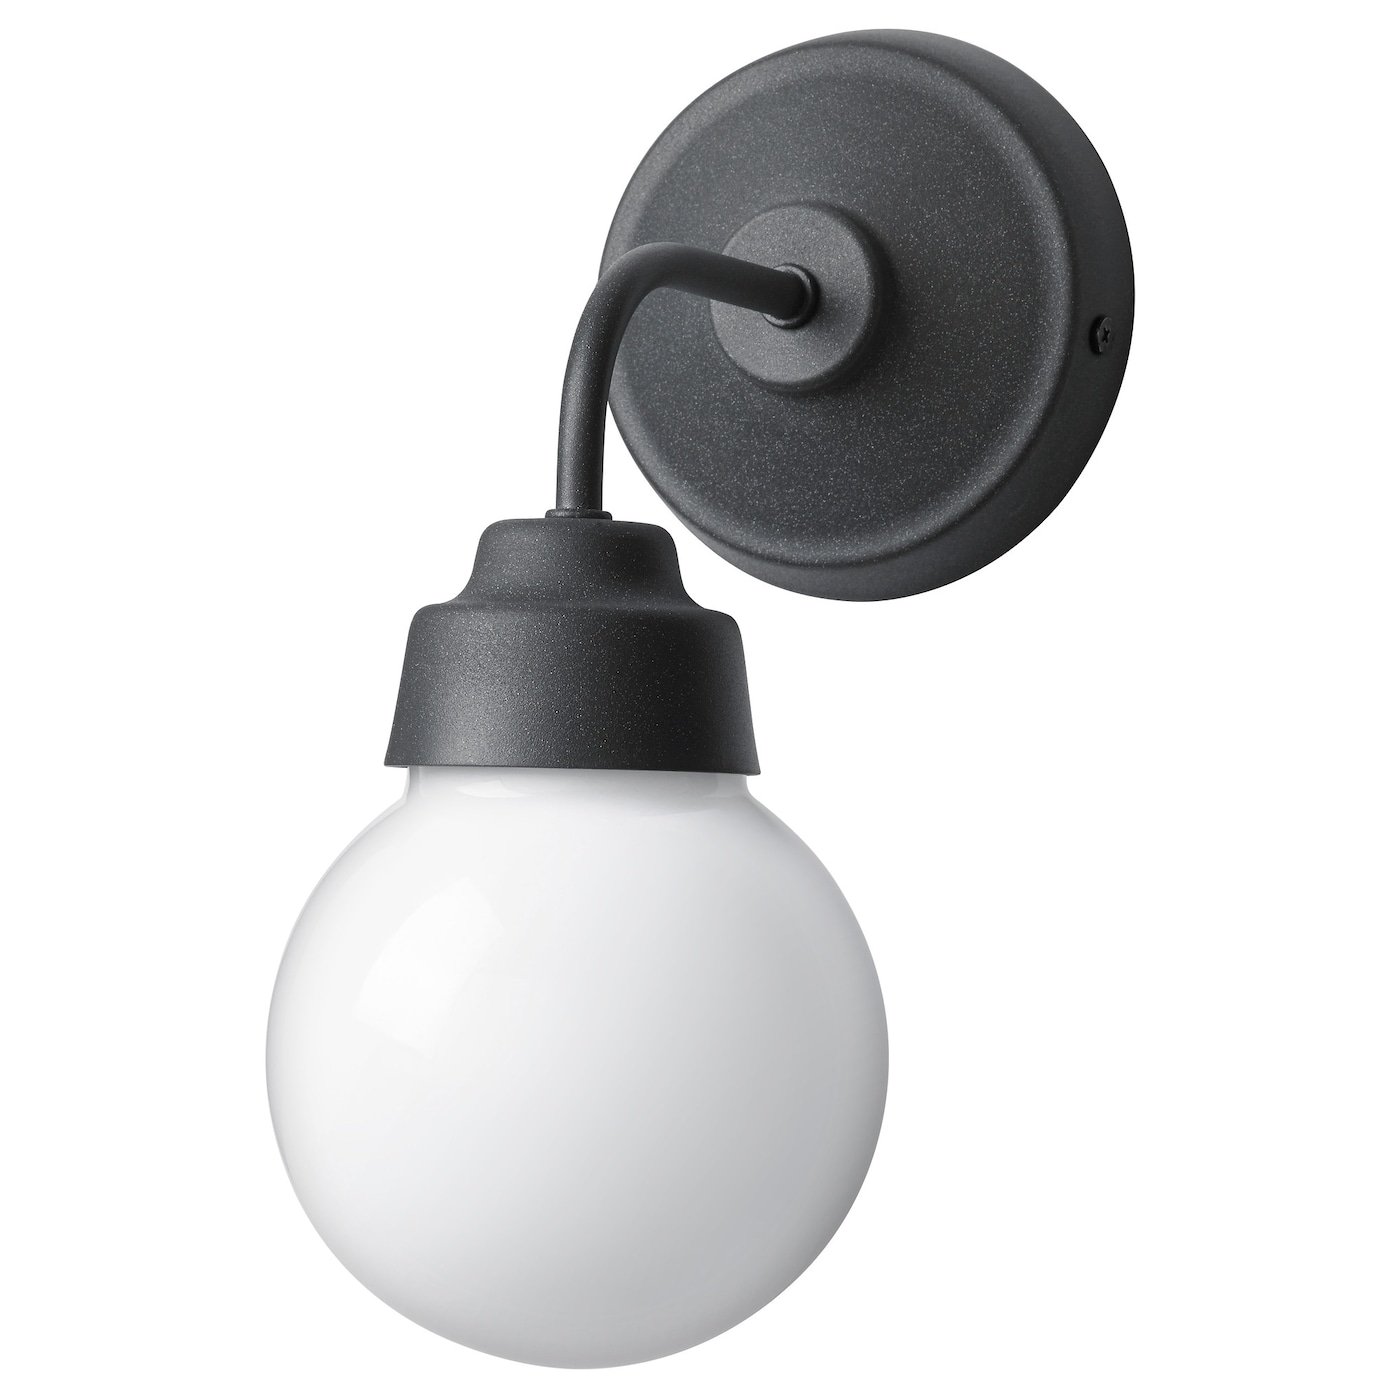 IKEA VITEMÖLLA wall lamp Flexible; can be mounted with the light turned downwards or upwards.